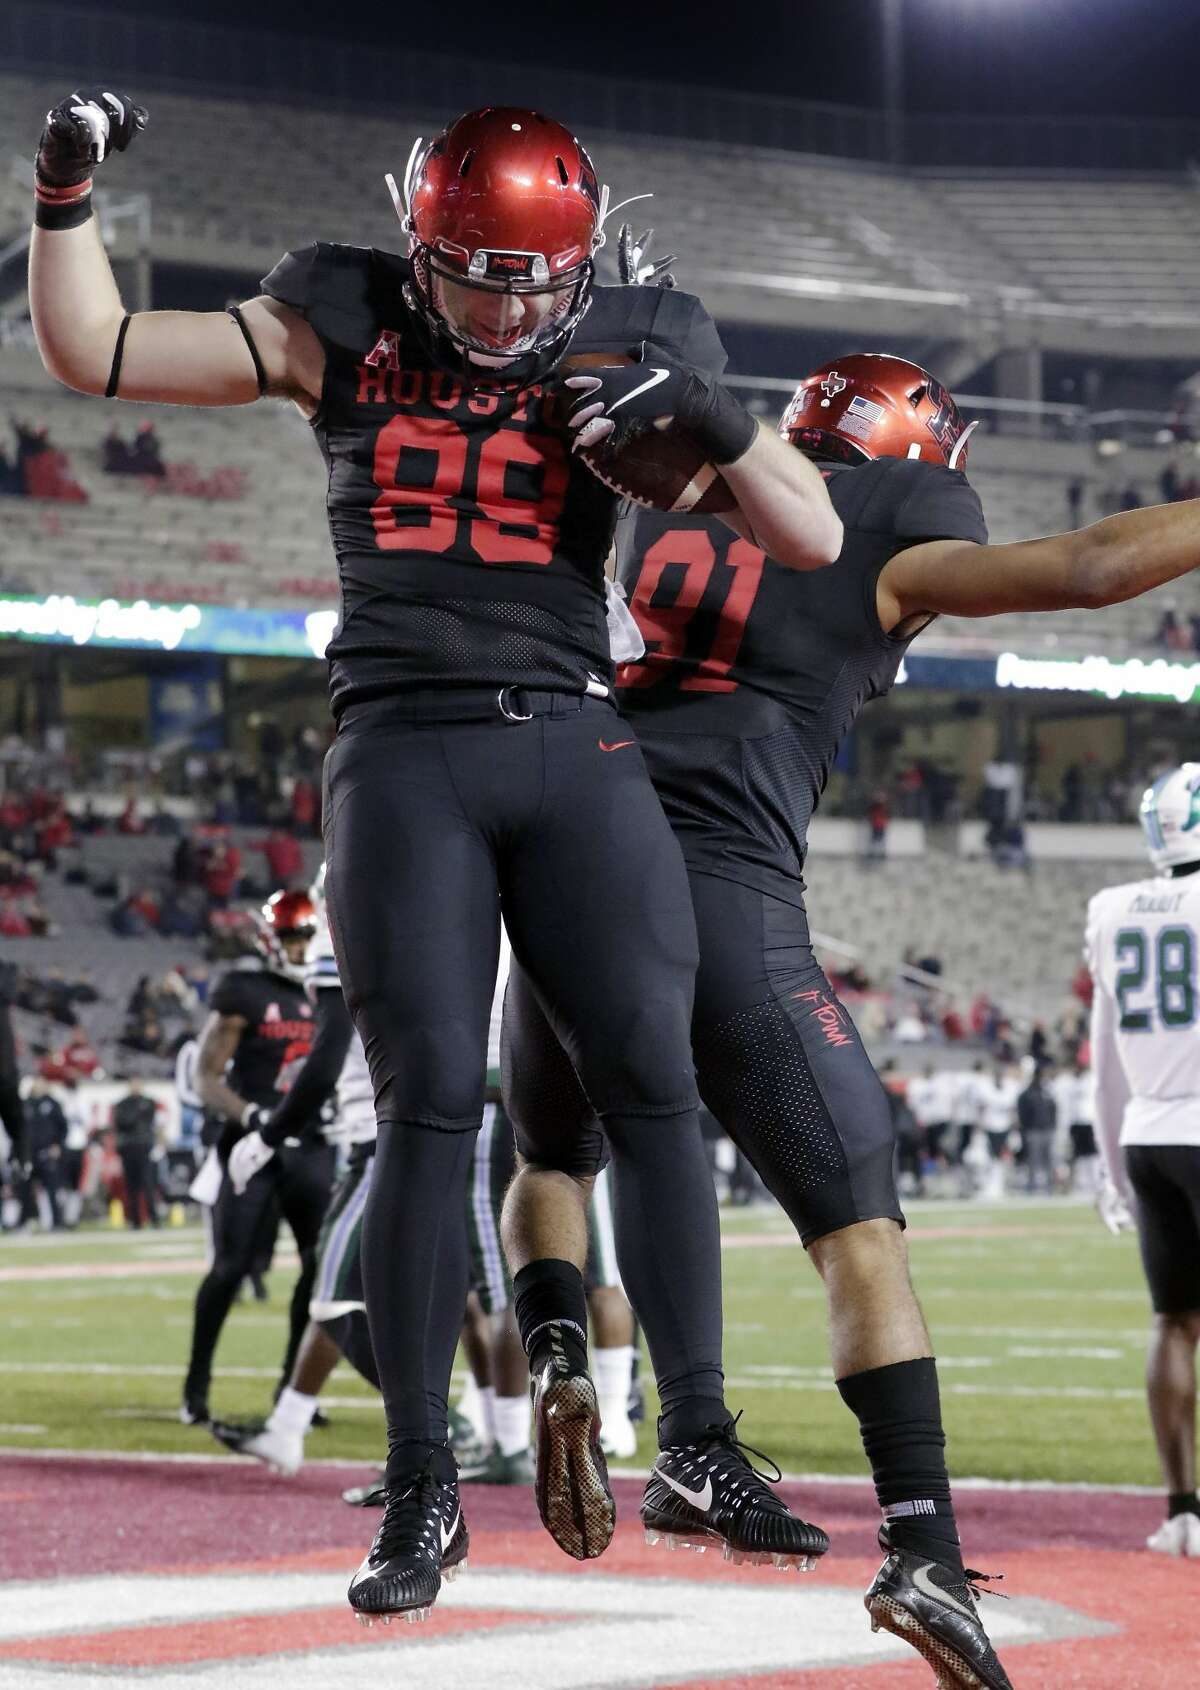 Houston tight end Parker Eichenberger (89) celebrates his touchdown with defensive end Tahj Brown (91) during the second half of their football game against Tulane Thursday, Nov. 15, 2018 in Houston, TX.